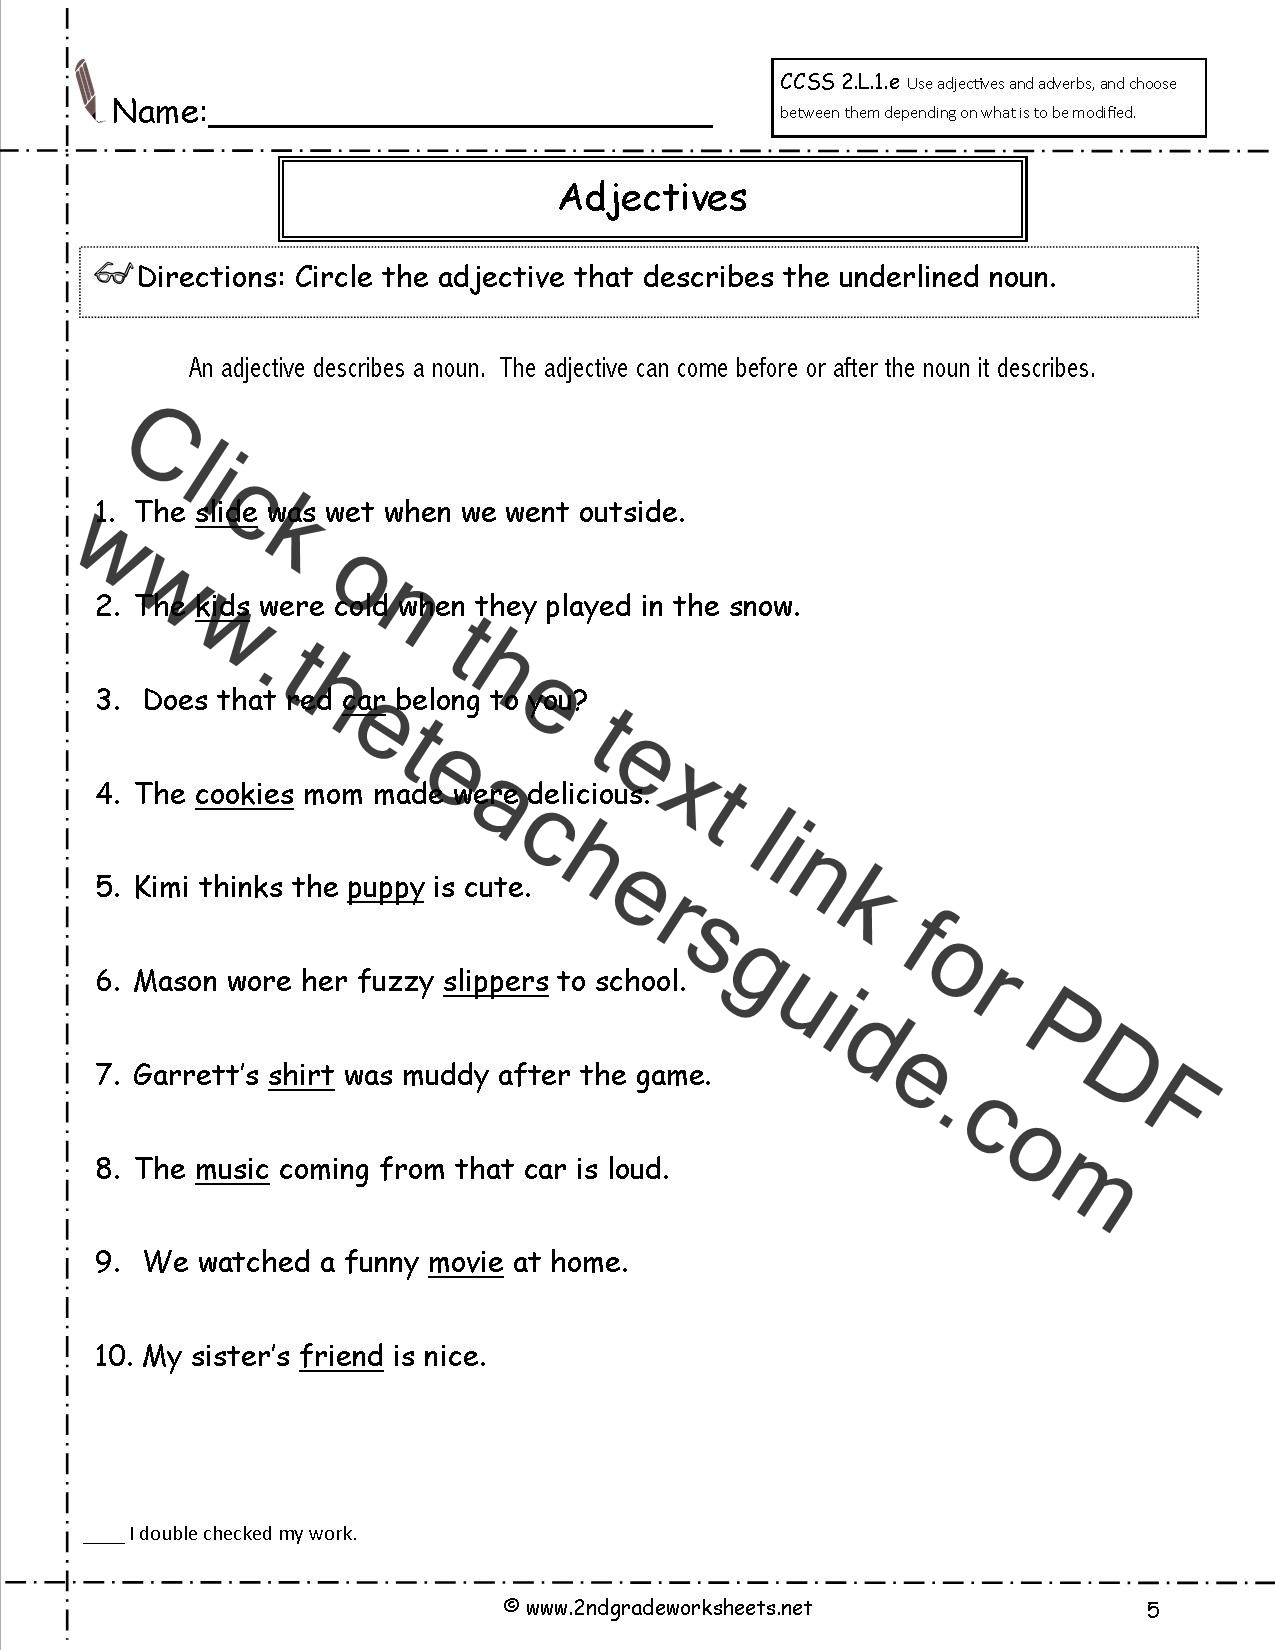 Adjectives Worksheet 2nd Grade Free Printable Worksheet Adjectives and Adverbs